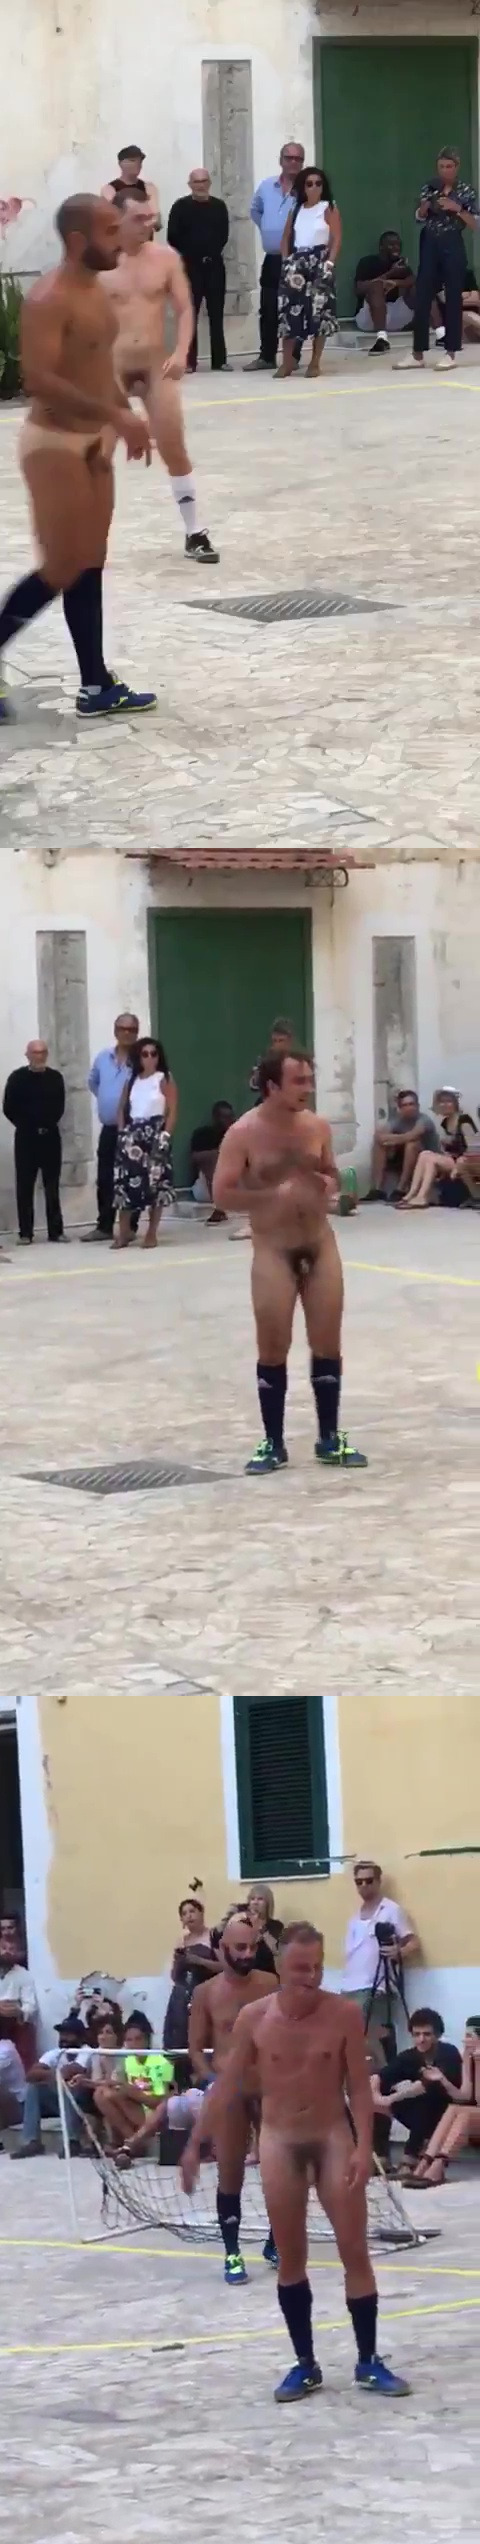 naked football match in public